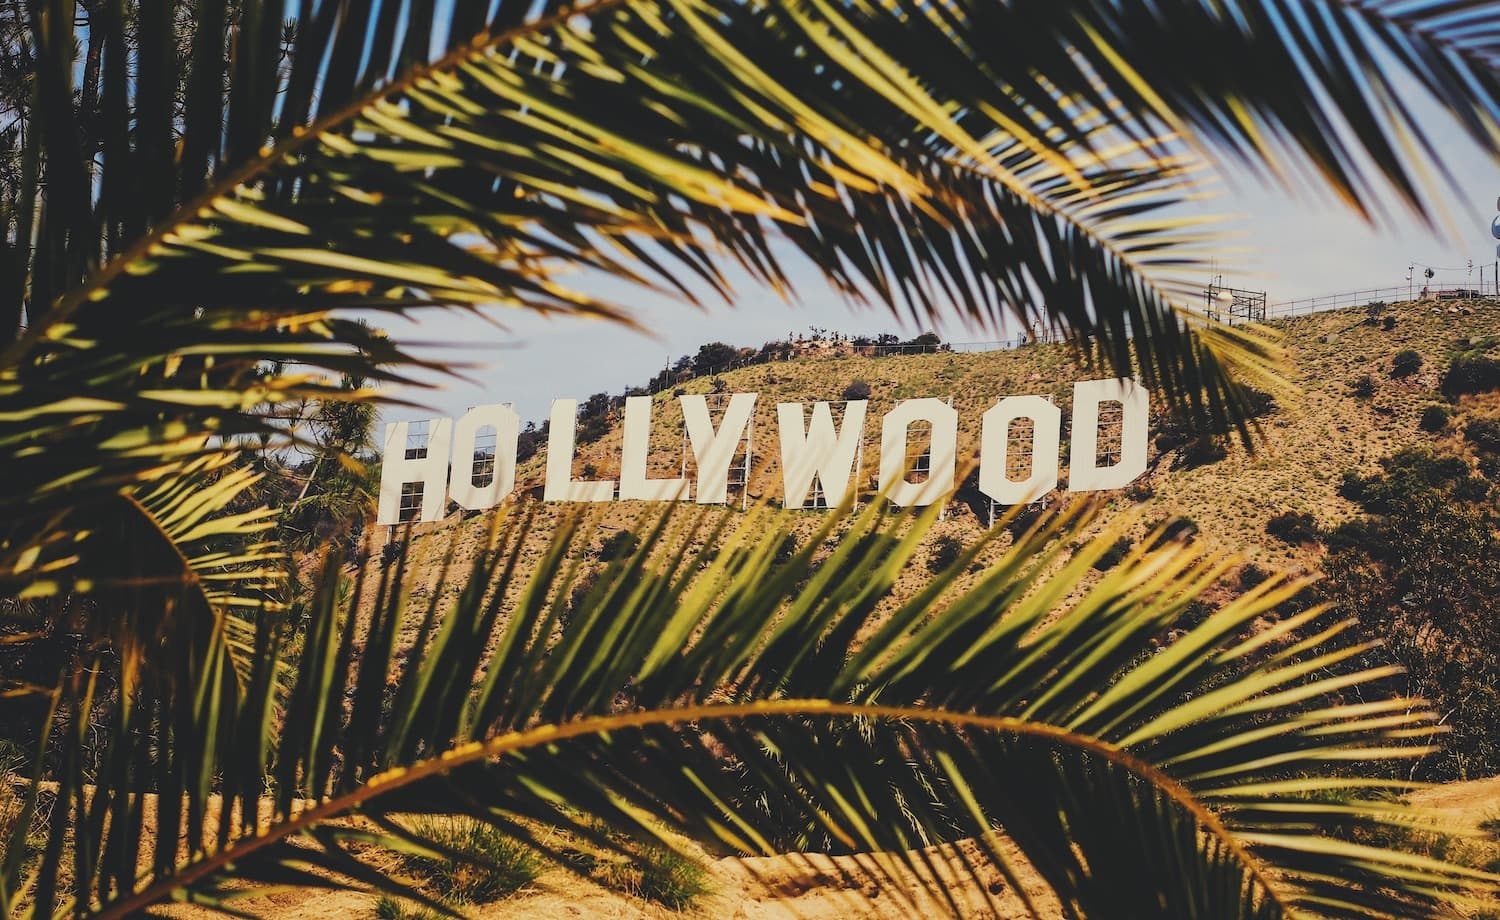 ONCE UPON A TIME IN HOLLYWOOD | A Love Letter To Making Movies